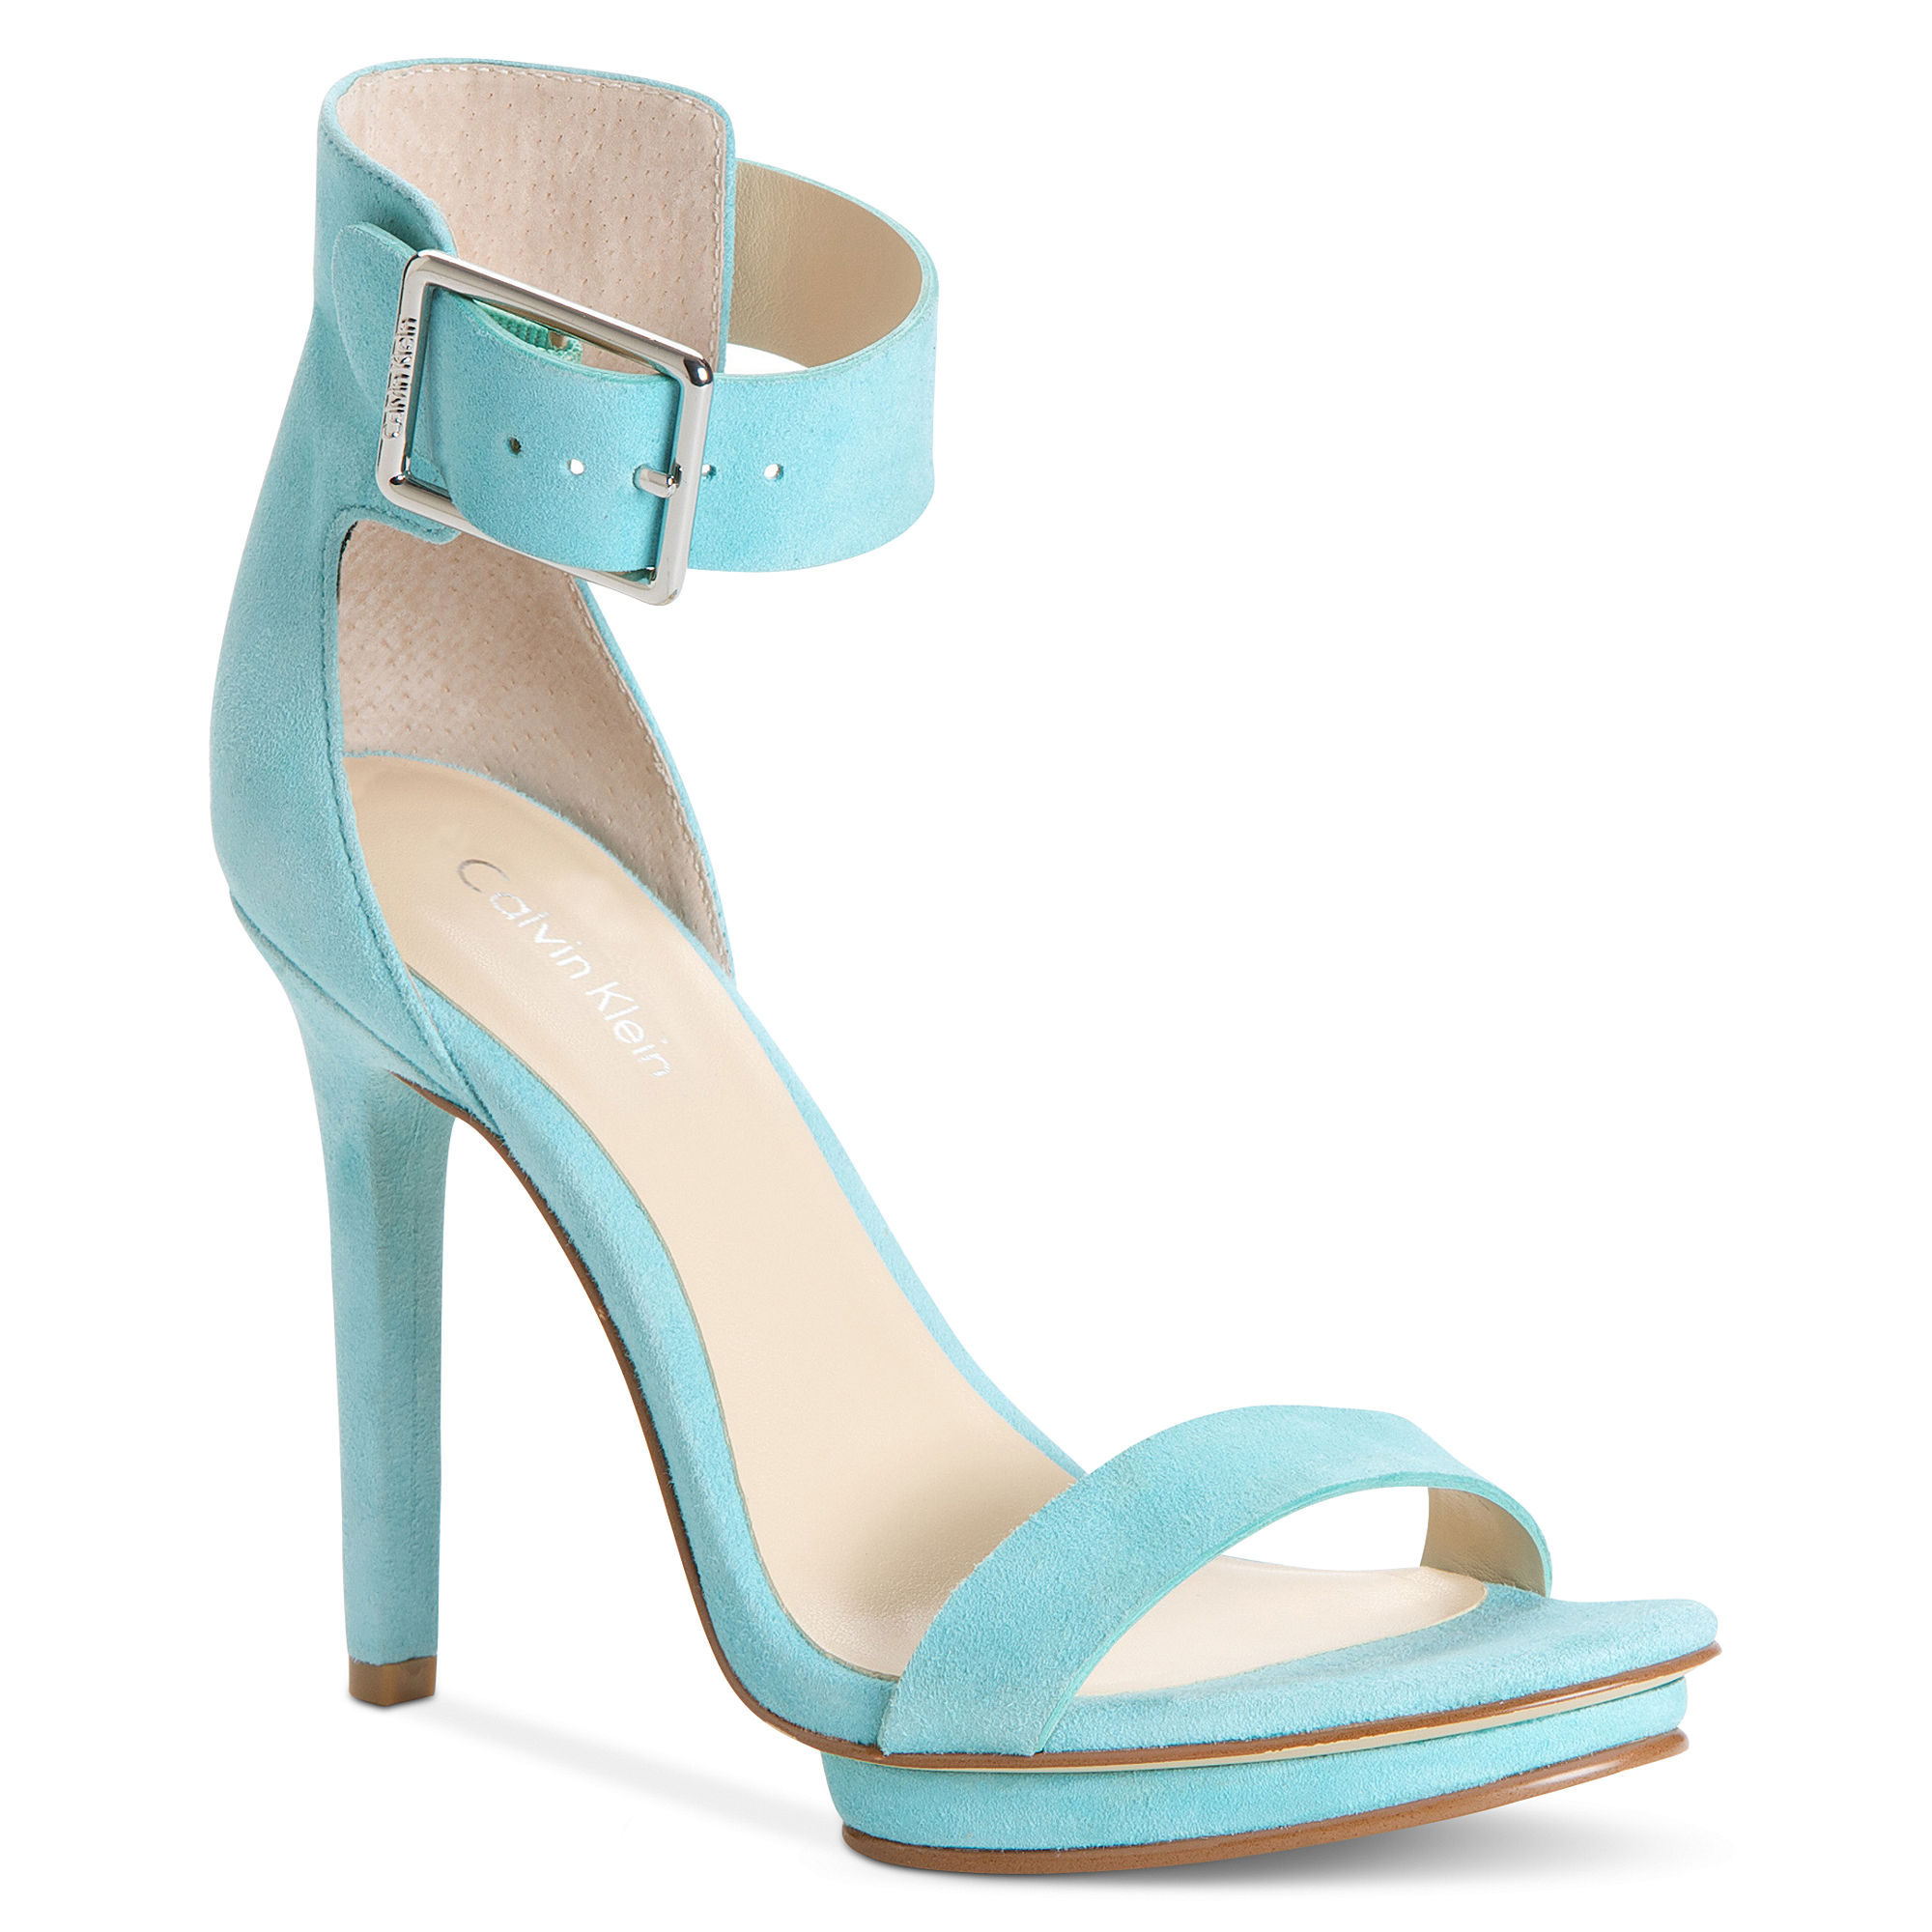 calvin klein high heel sandals in blue black croco